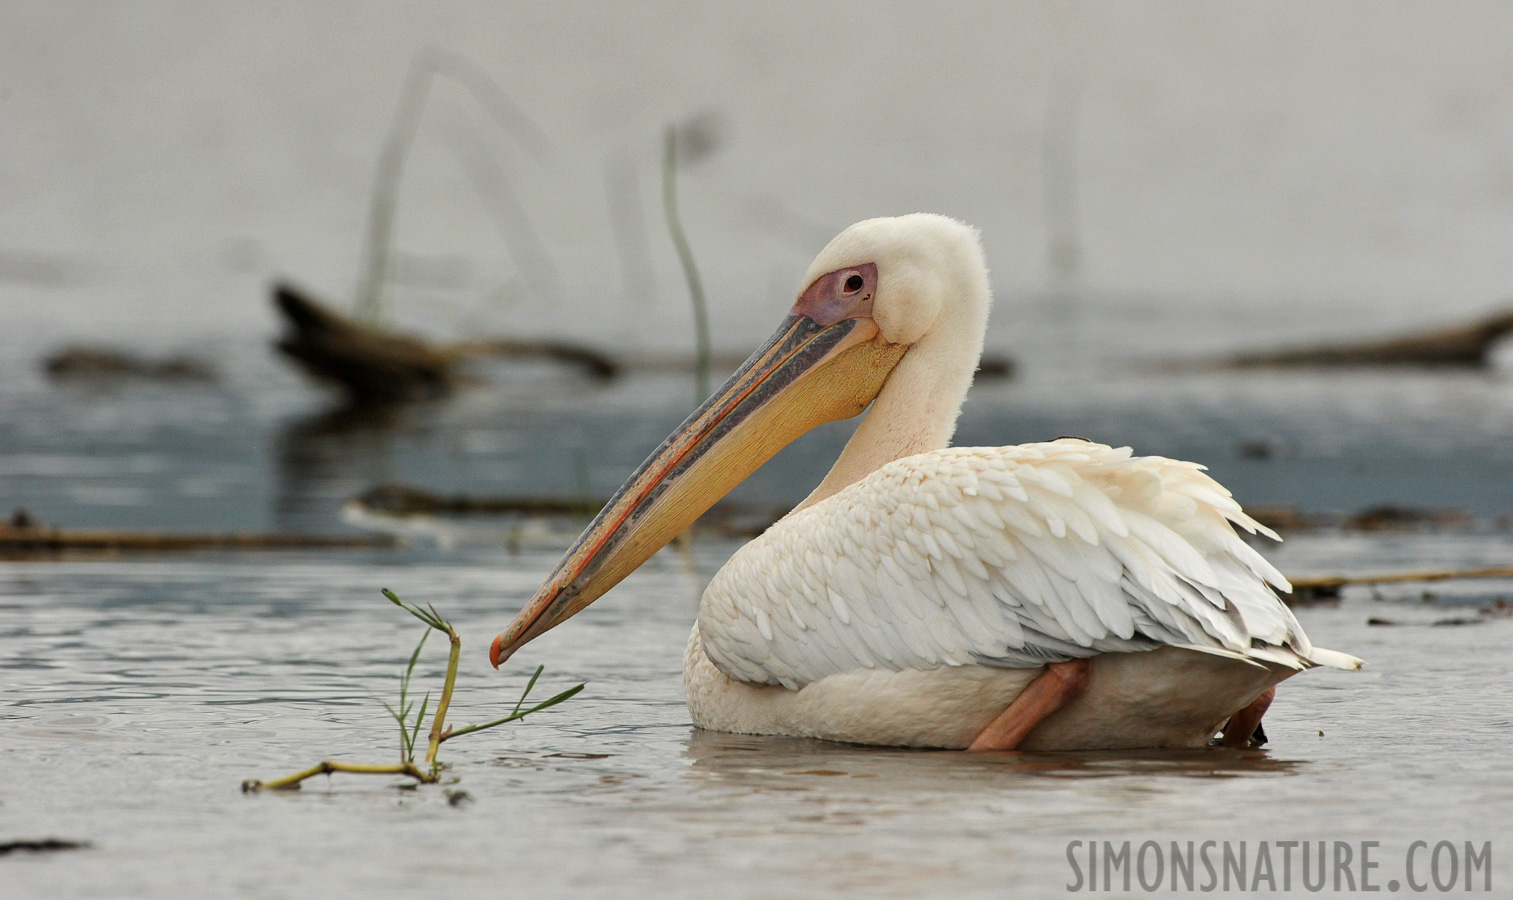 Great white pelican [Pelecanus onocrotalus]